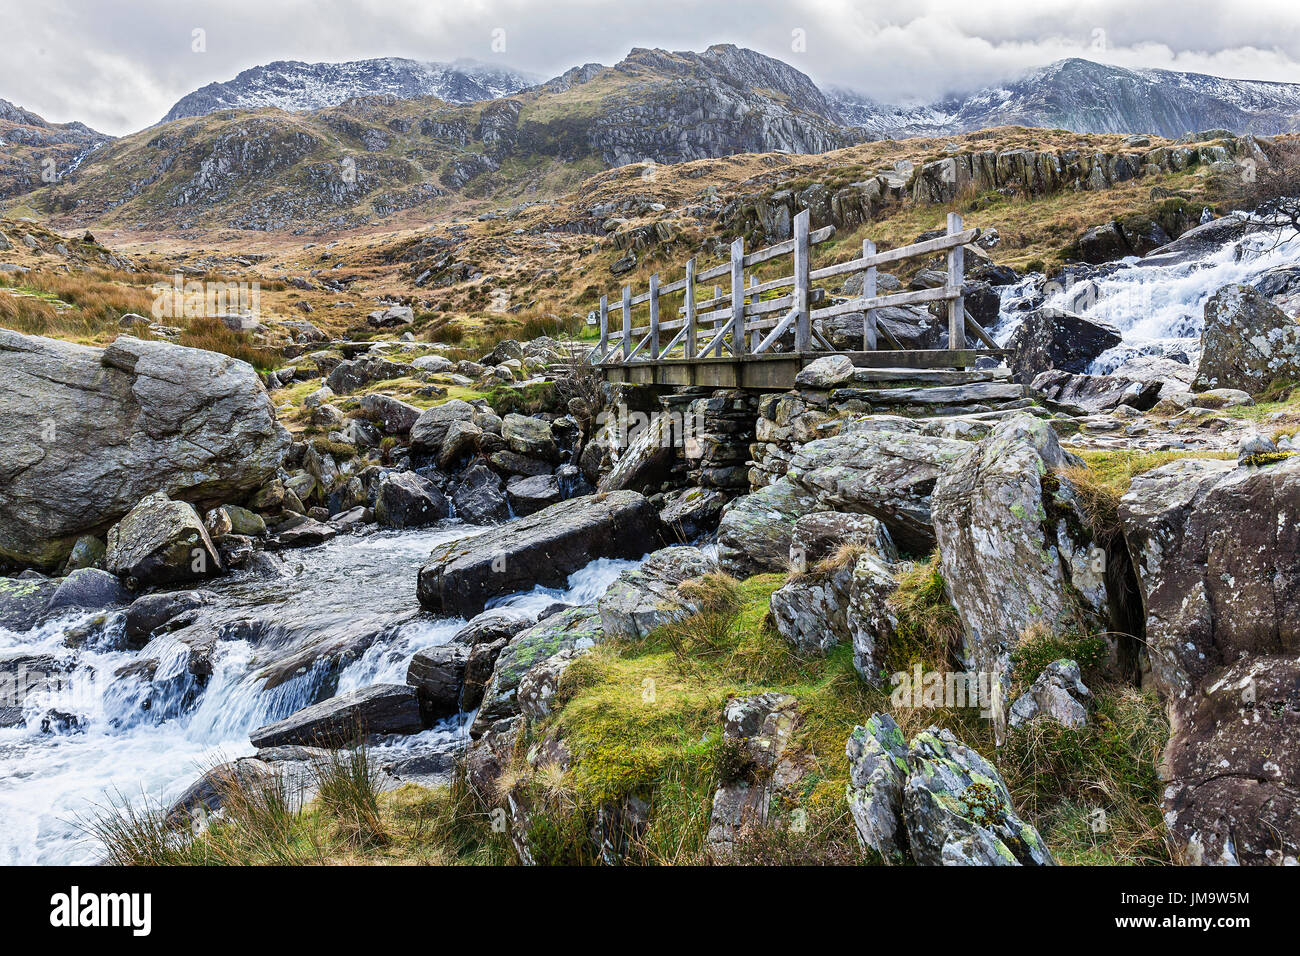 Bridge across waterfall near Llyn Ogwen on the path to Llyn Idwal and the Devil's Kitchen in the Glyderau mountain range Snowdonia North Wales UK - Stock Image